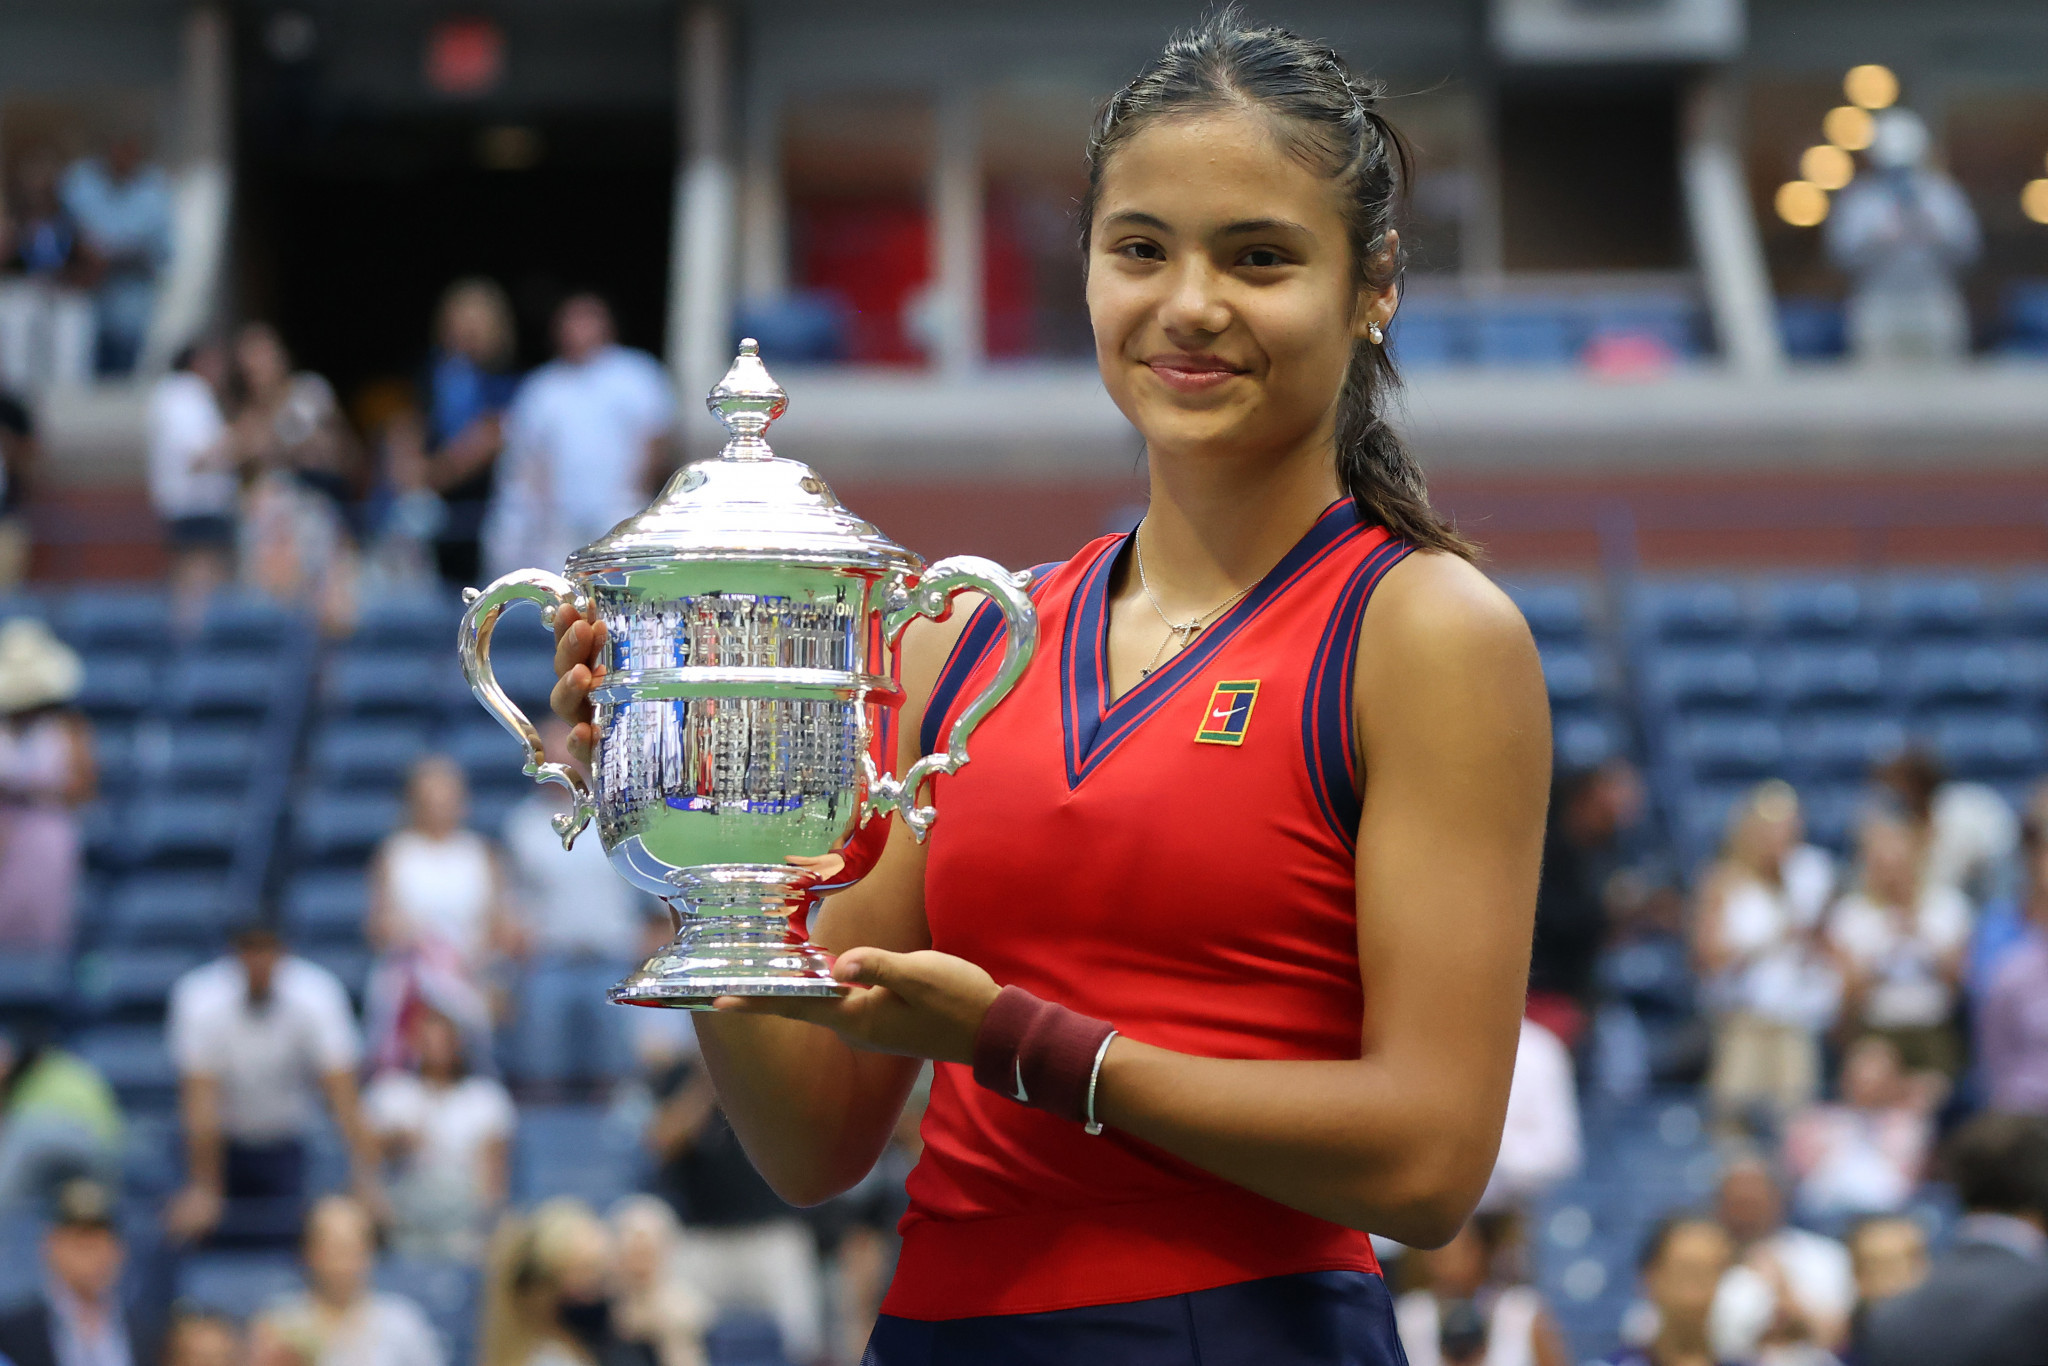 Emma Raducanu became the first qualifier to win a Grand Slam singles title ©Getty Images